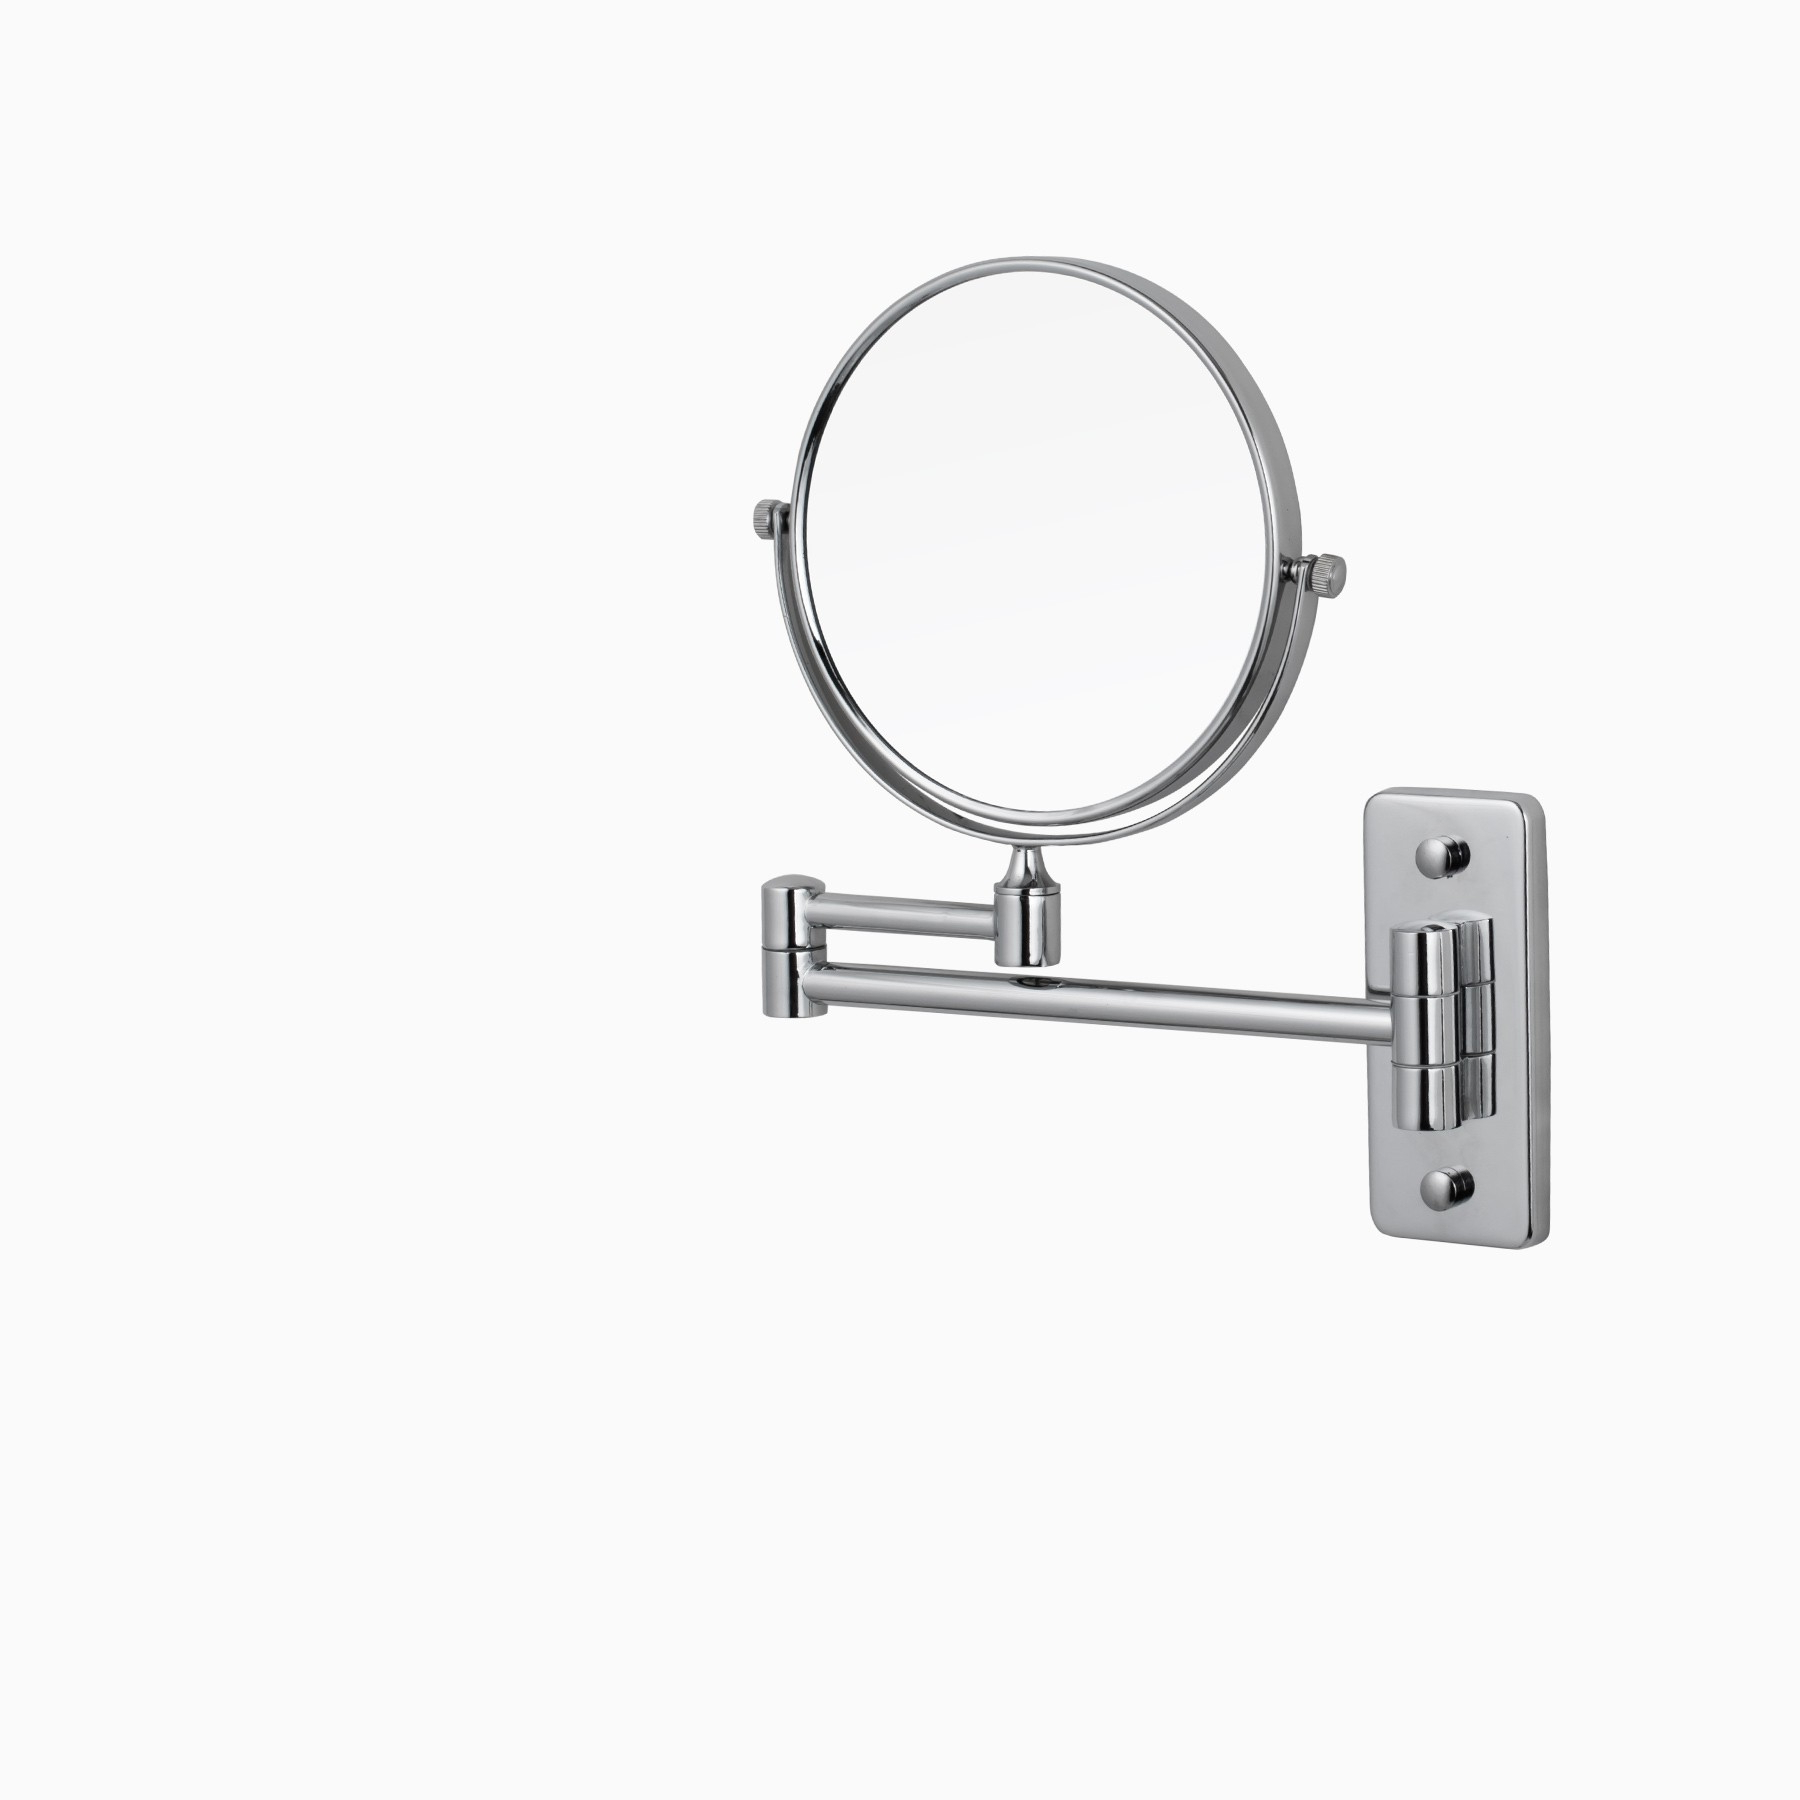 Windor Wall Mount Make Up Mirror With Adjustable Arm, Polished Chrome For Well Known Adjustable Wall Mirrors (Gallery 6 of 20)